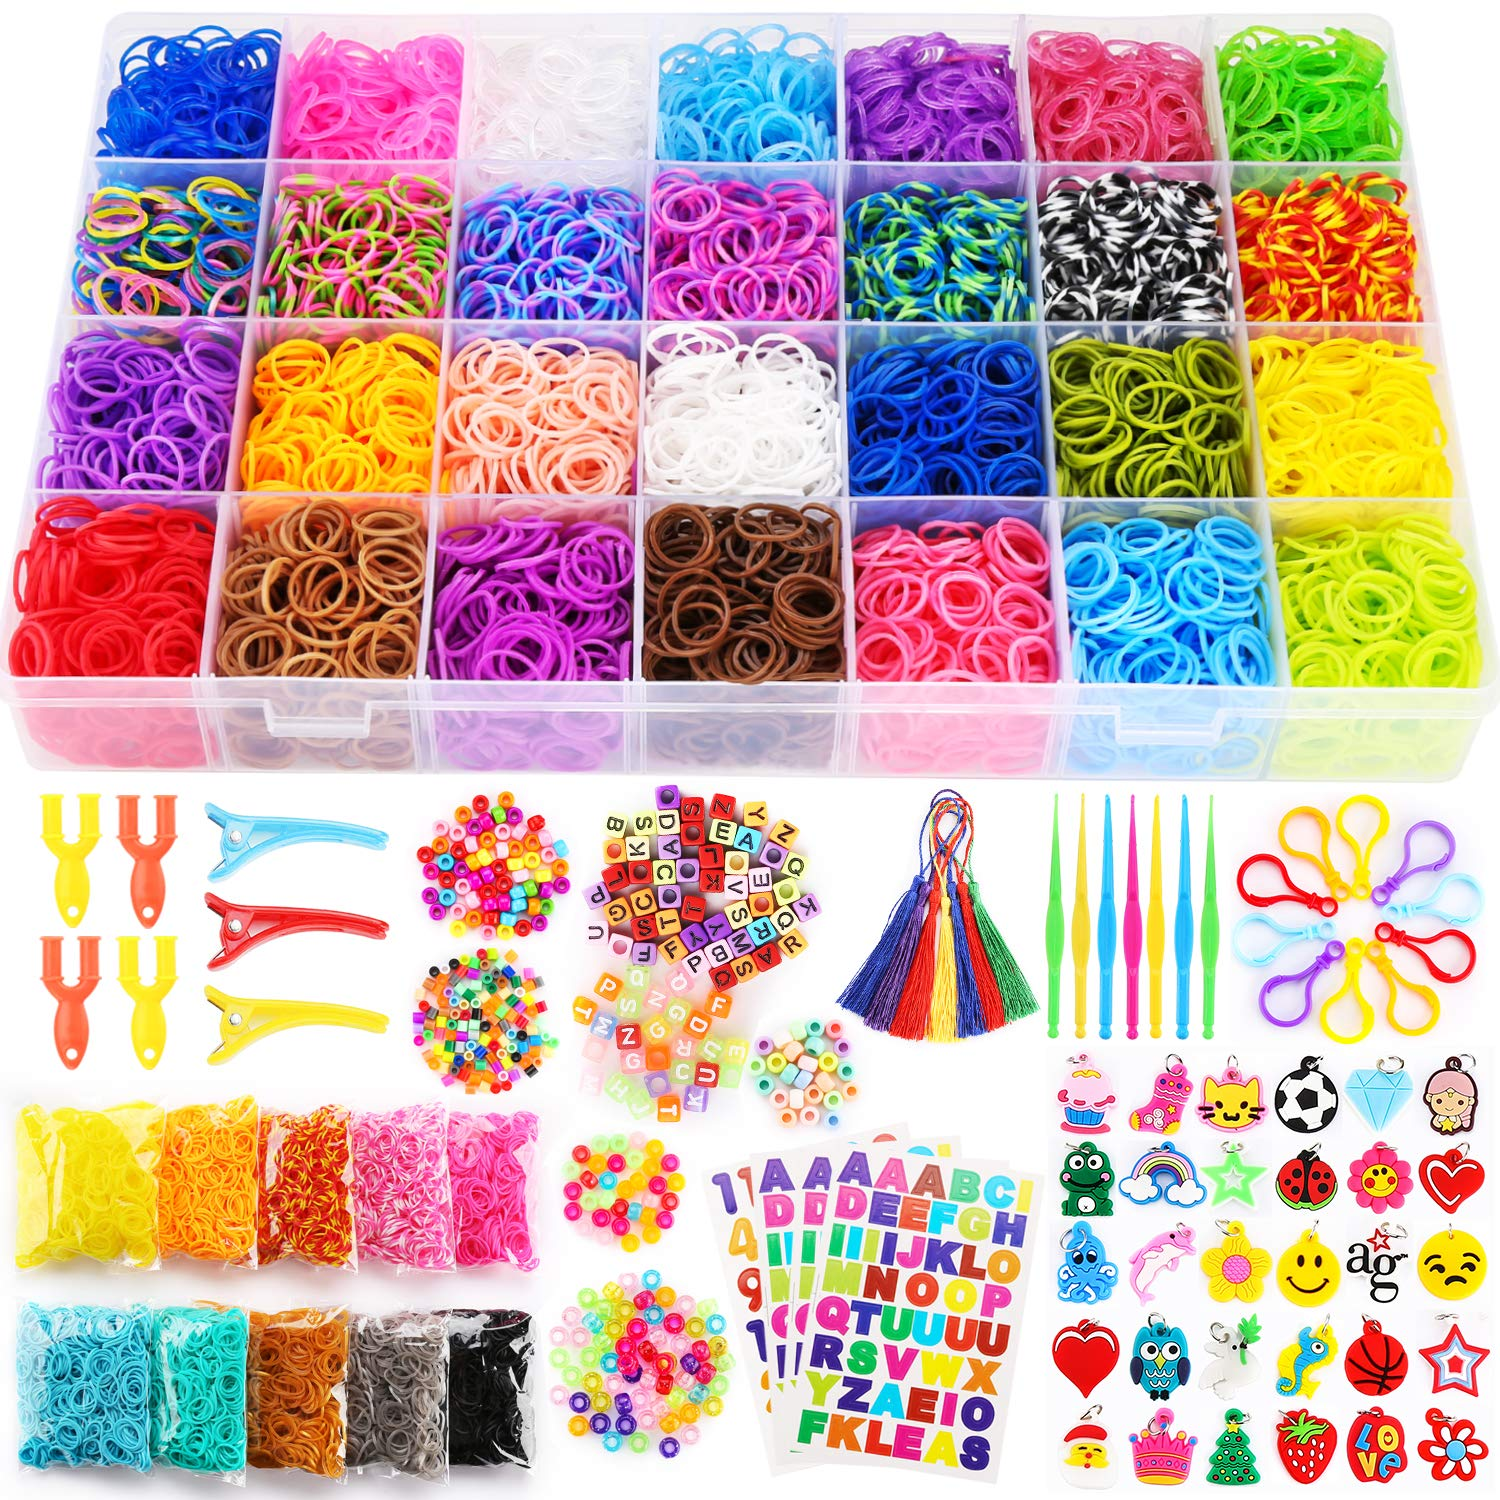 19500+ Rainbow Rubber Bands Refill Kit, 38 Colors Loom Bands, 800 S-Clips, 4 Y Looms, 300 Beads, 52 ABC Beads, 30 Charms, 10 Backpack Hooks, 7 Tassels, 7 Crochet Hooks and ABC Stickers by Parhlen